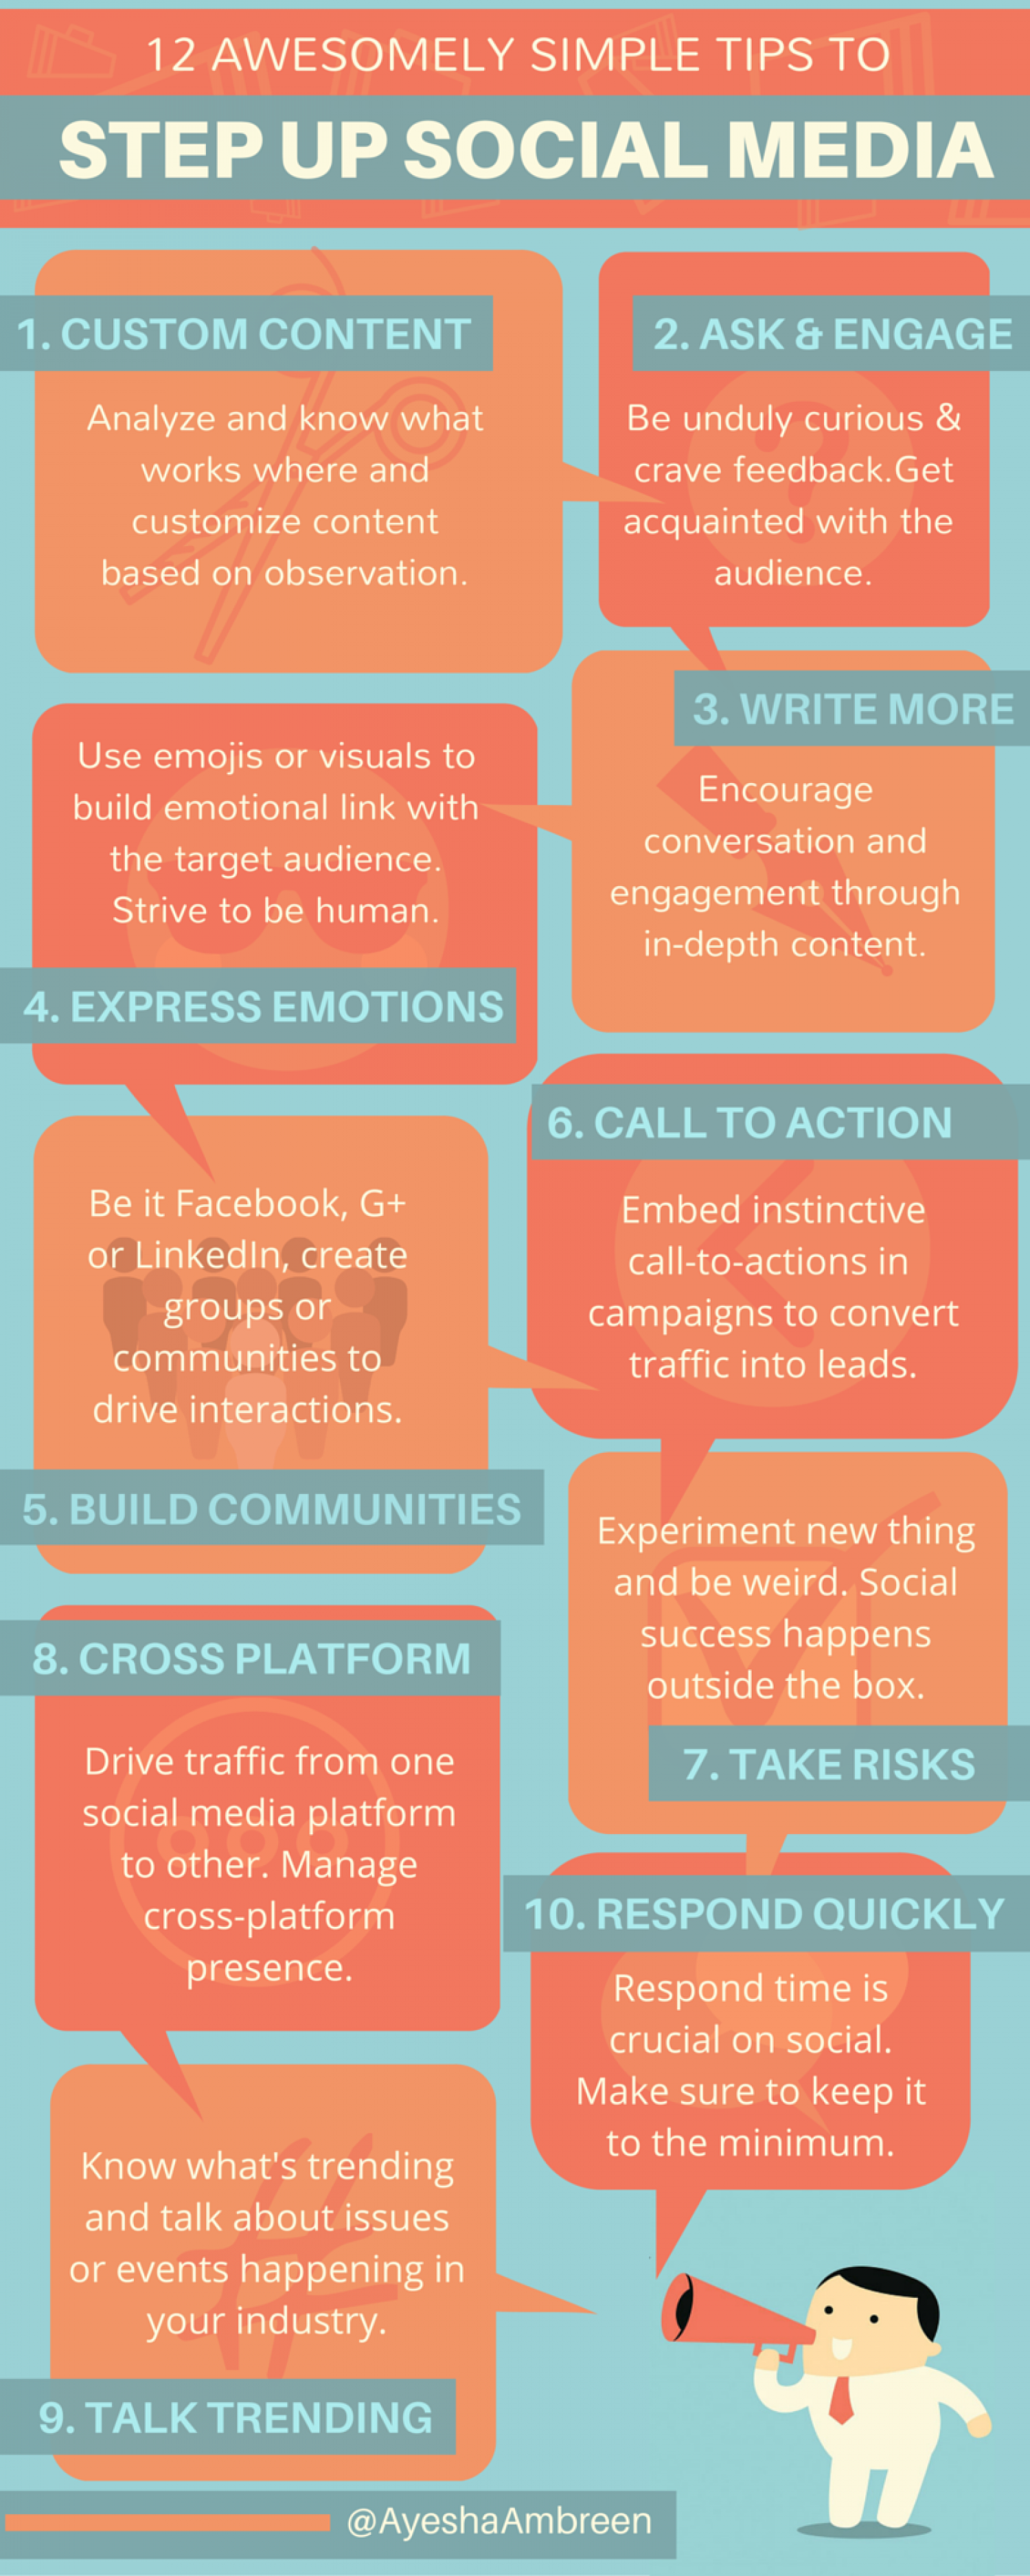 10 Awesomely Simple Tips To Step Up Social Media! Infographic